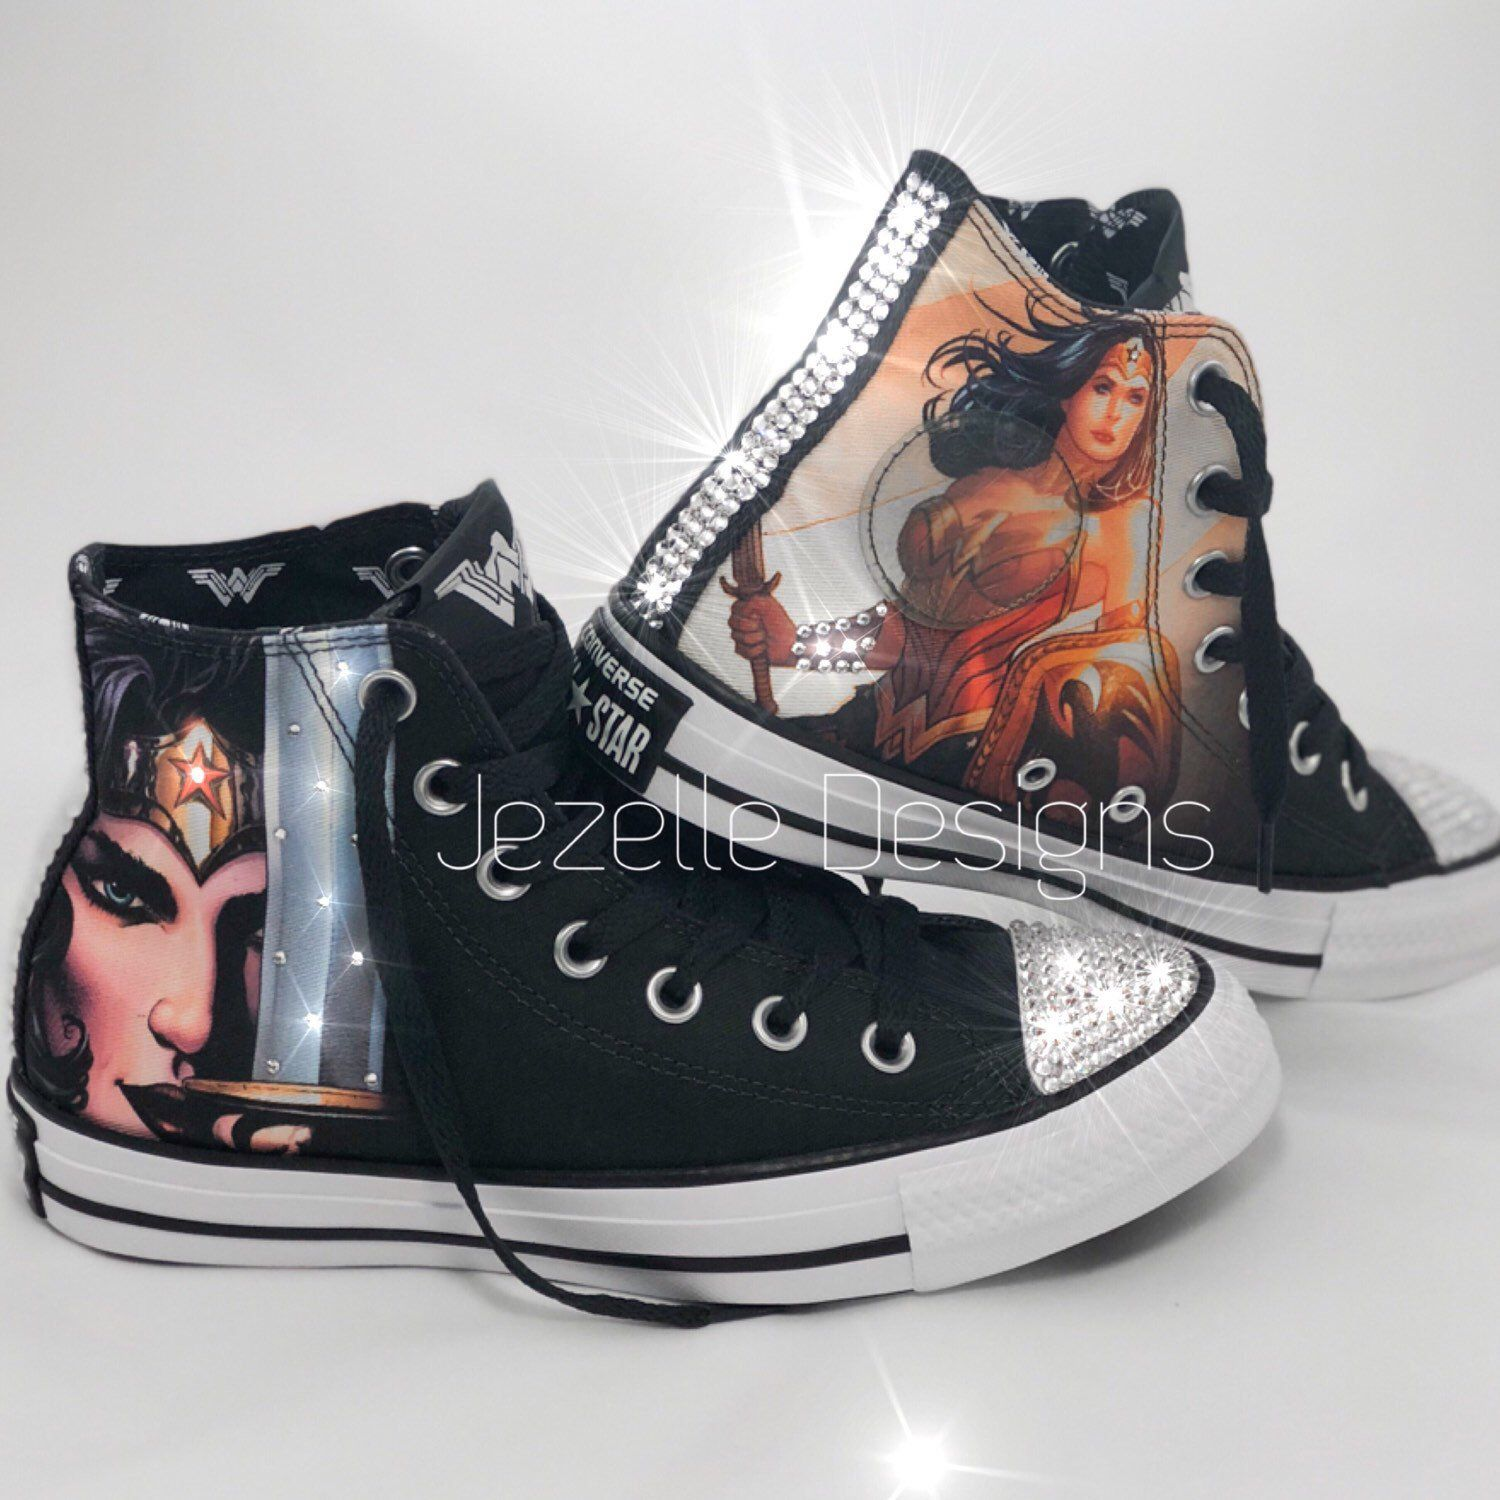 Wonder Woman Limited Edition Converse customized with Swarovski Crystals!!  💥 Exclusives by Jezelle Designs!! ⏰ Hurry.. Limited Supply!⏰ 2f5d4699d6